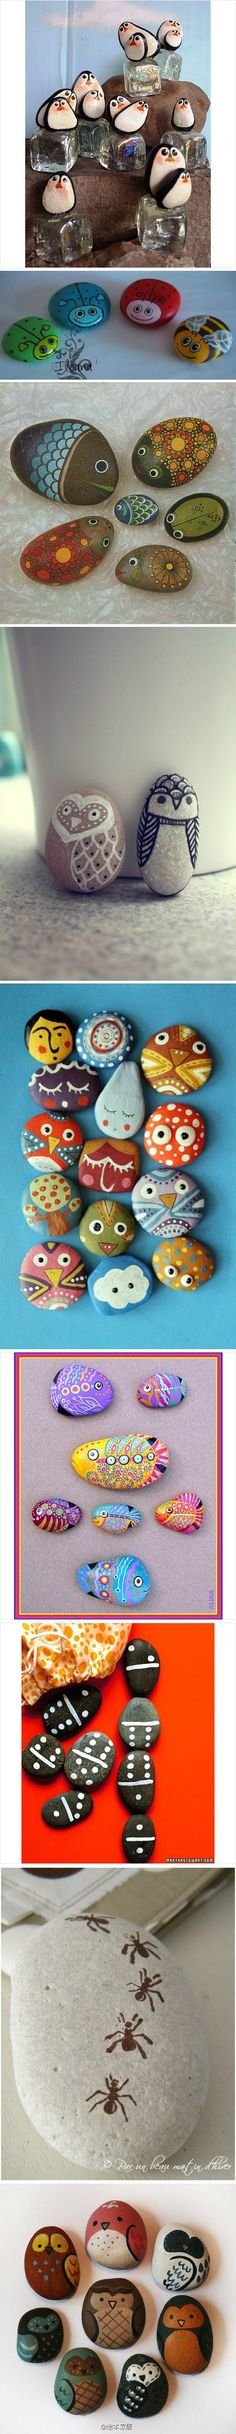 painted pebbles: would look great in the flower beds.